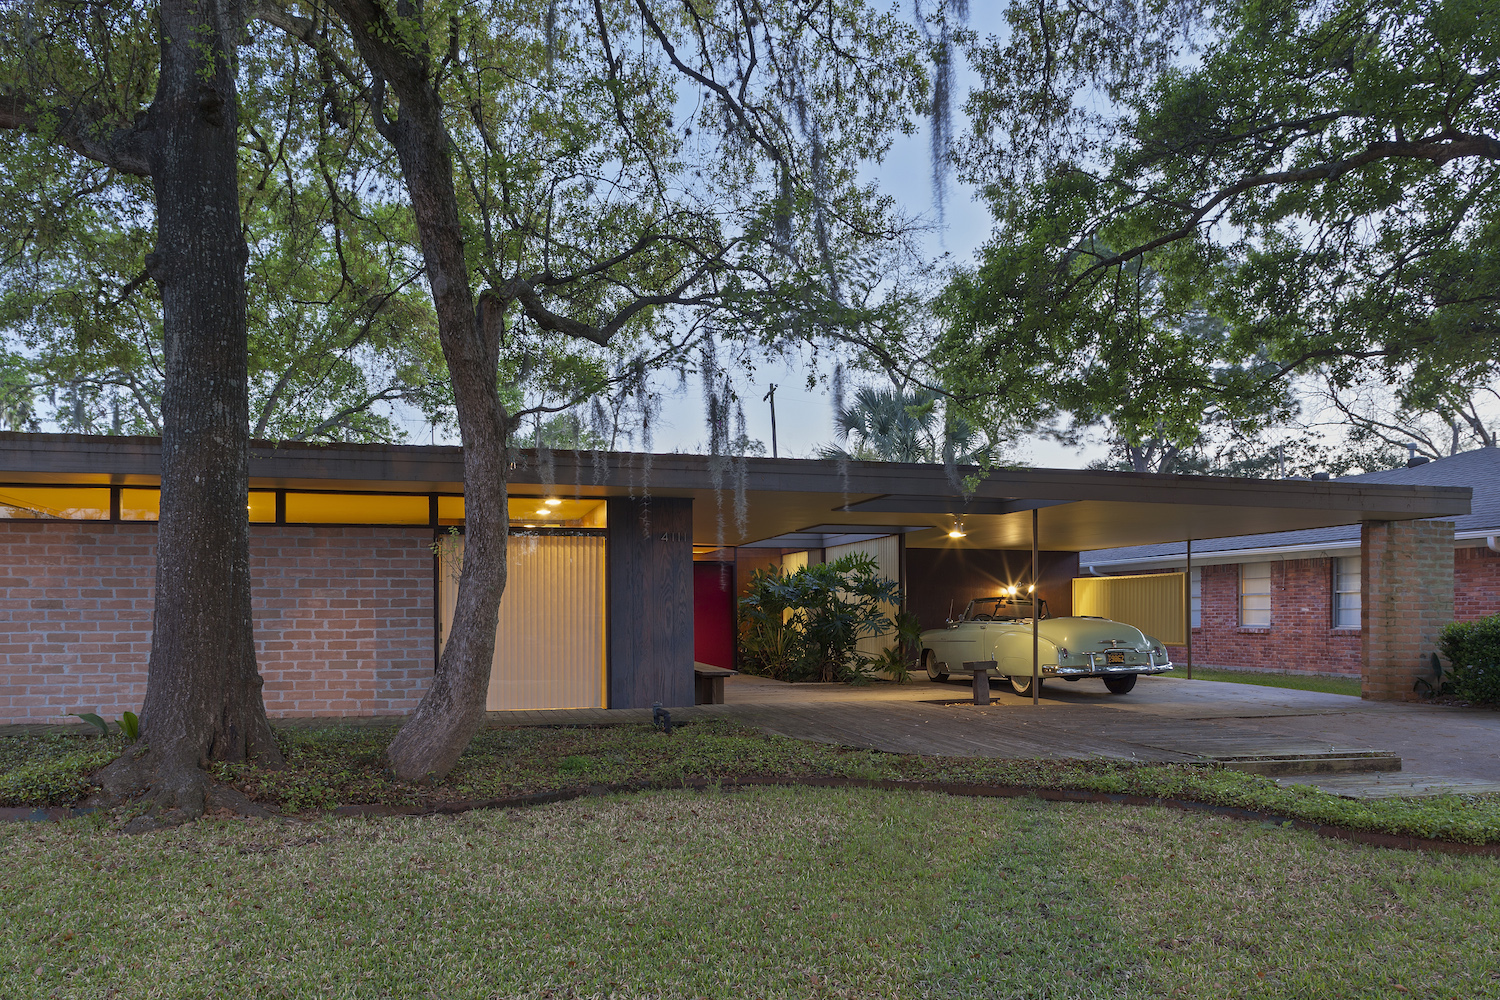 Restoration of midcentury modern house in houston to Mid century modern homes for sale houston